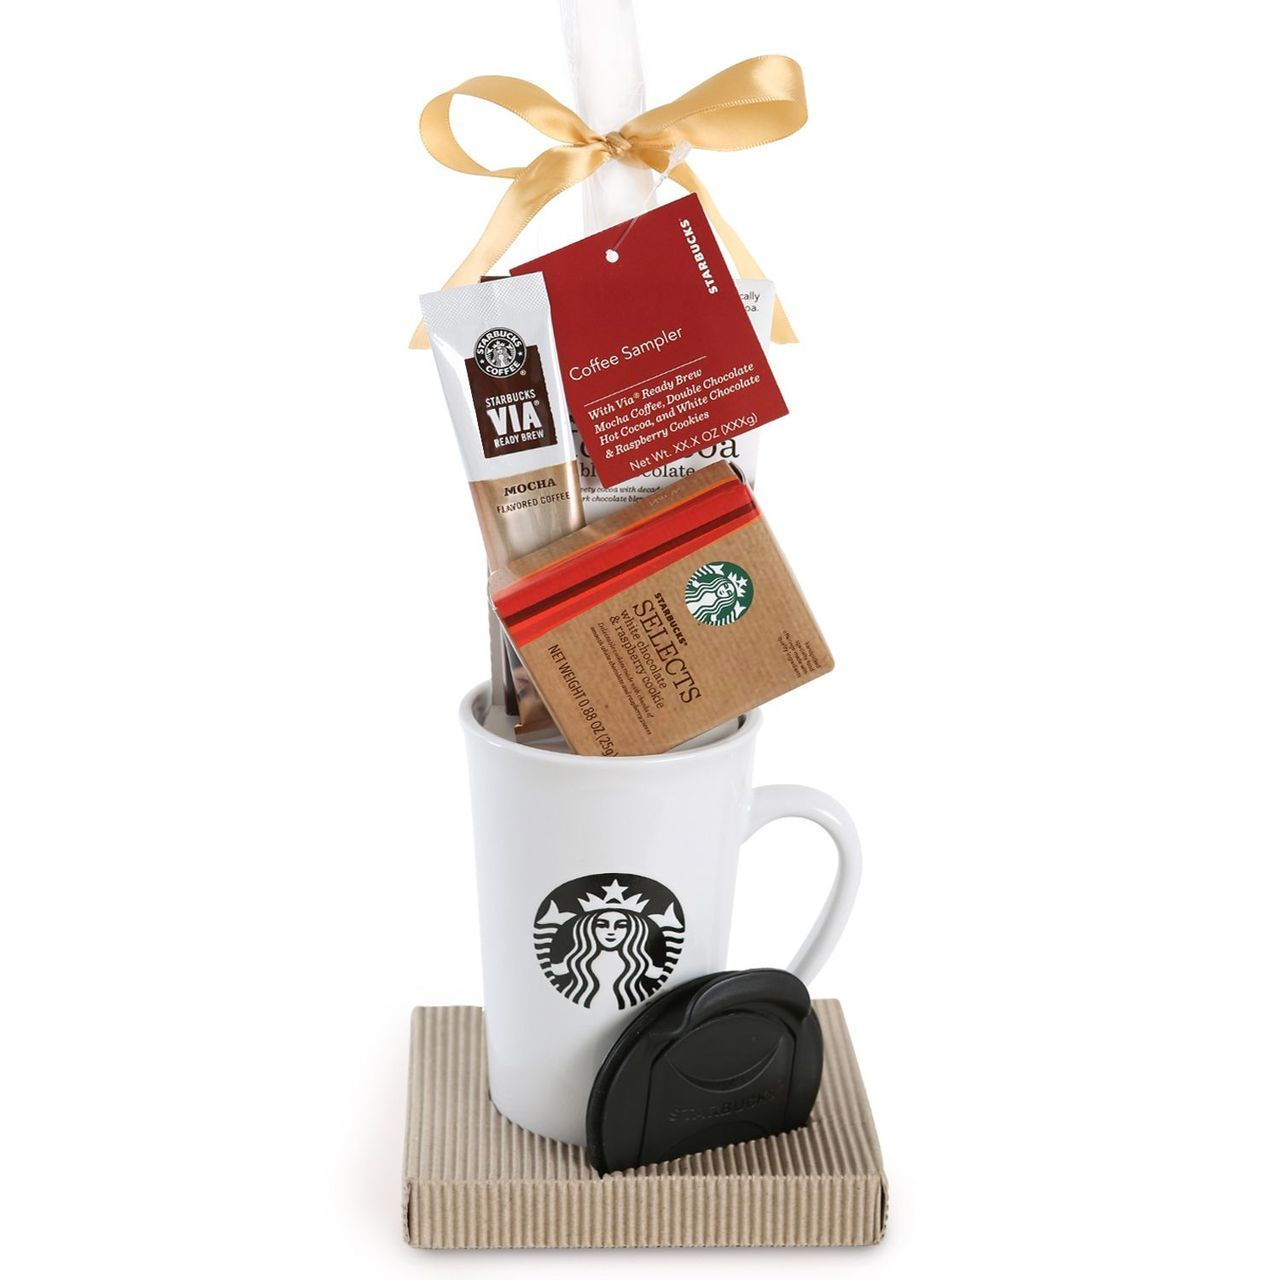 starbucks gift set with gift card